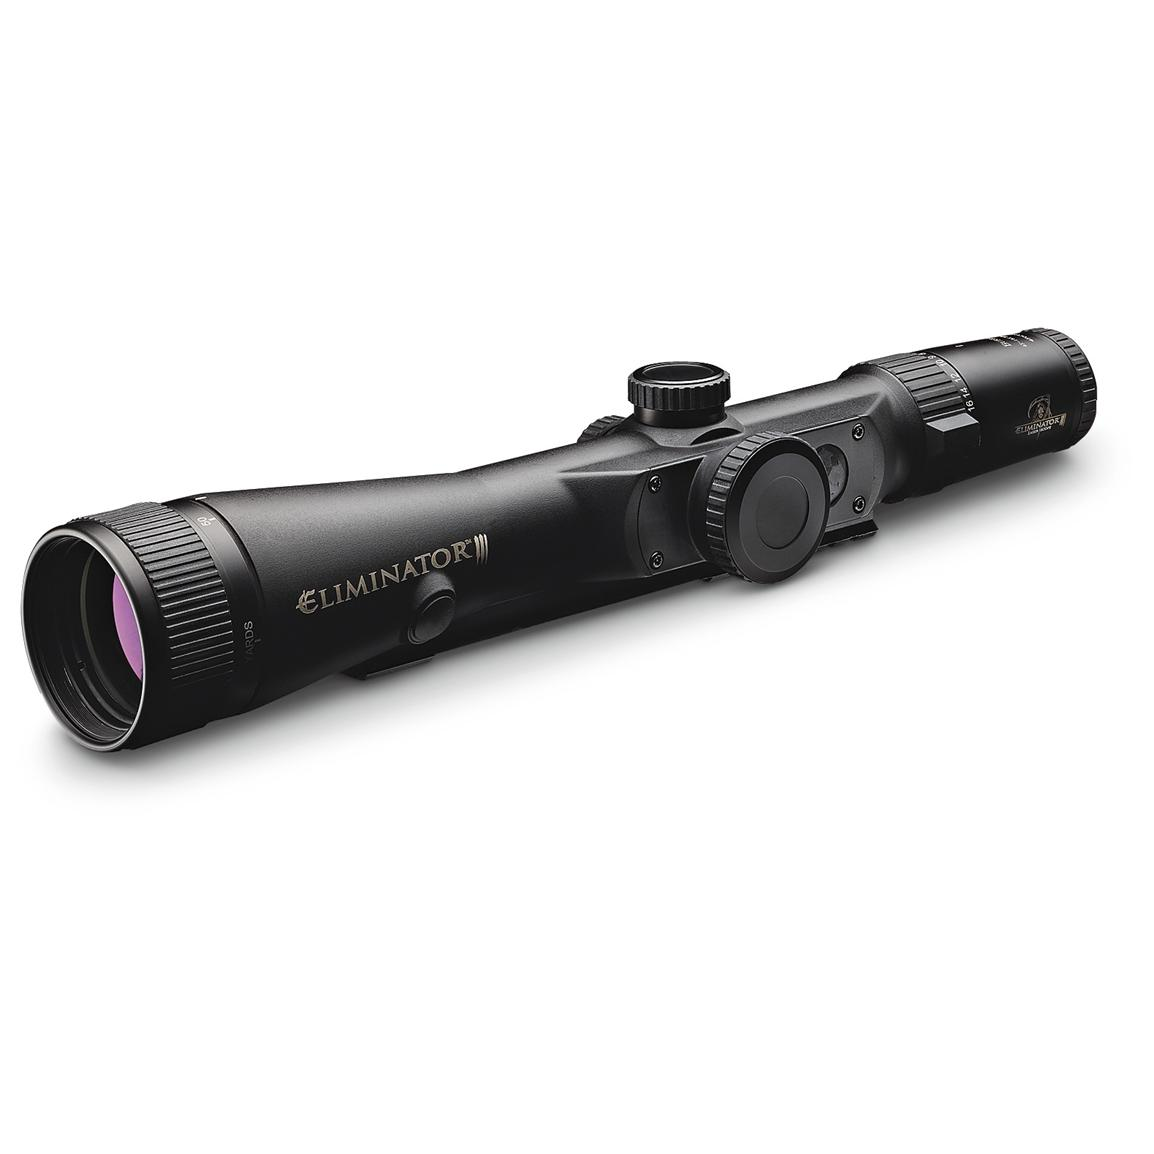 Burris Eliminator II 4-12x42mm Laser Scope